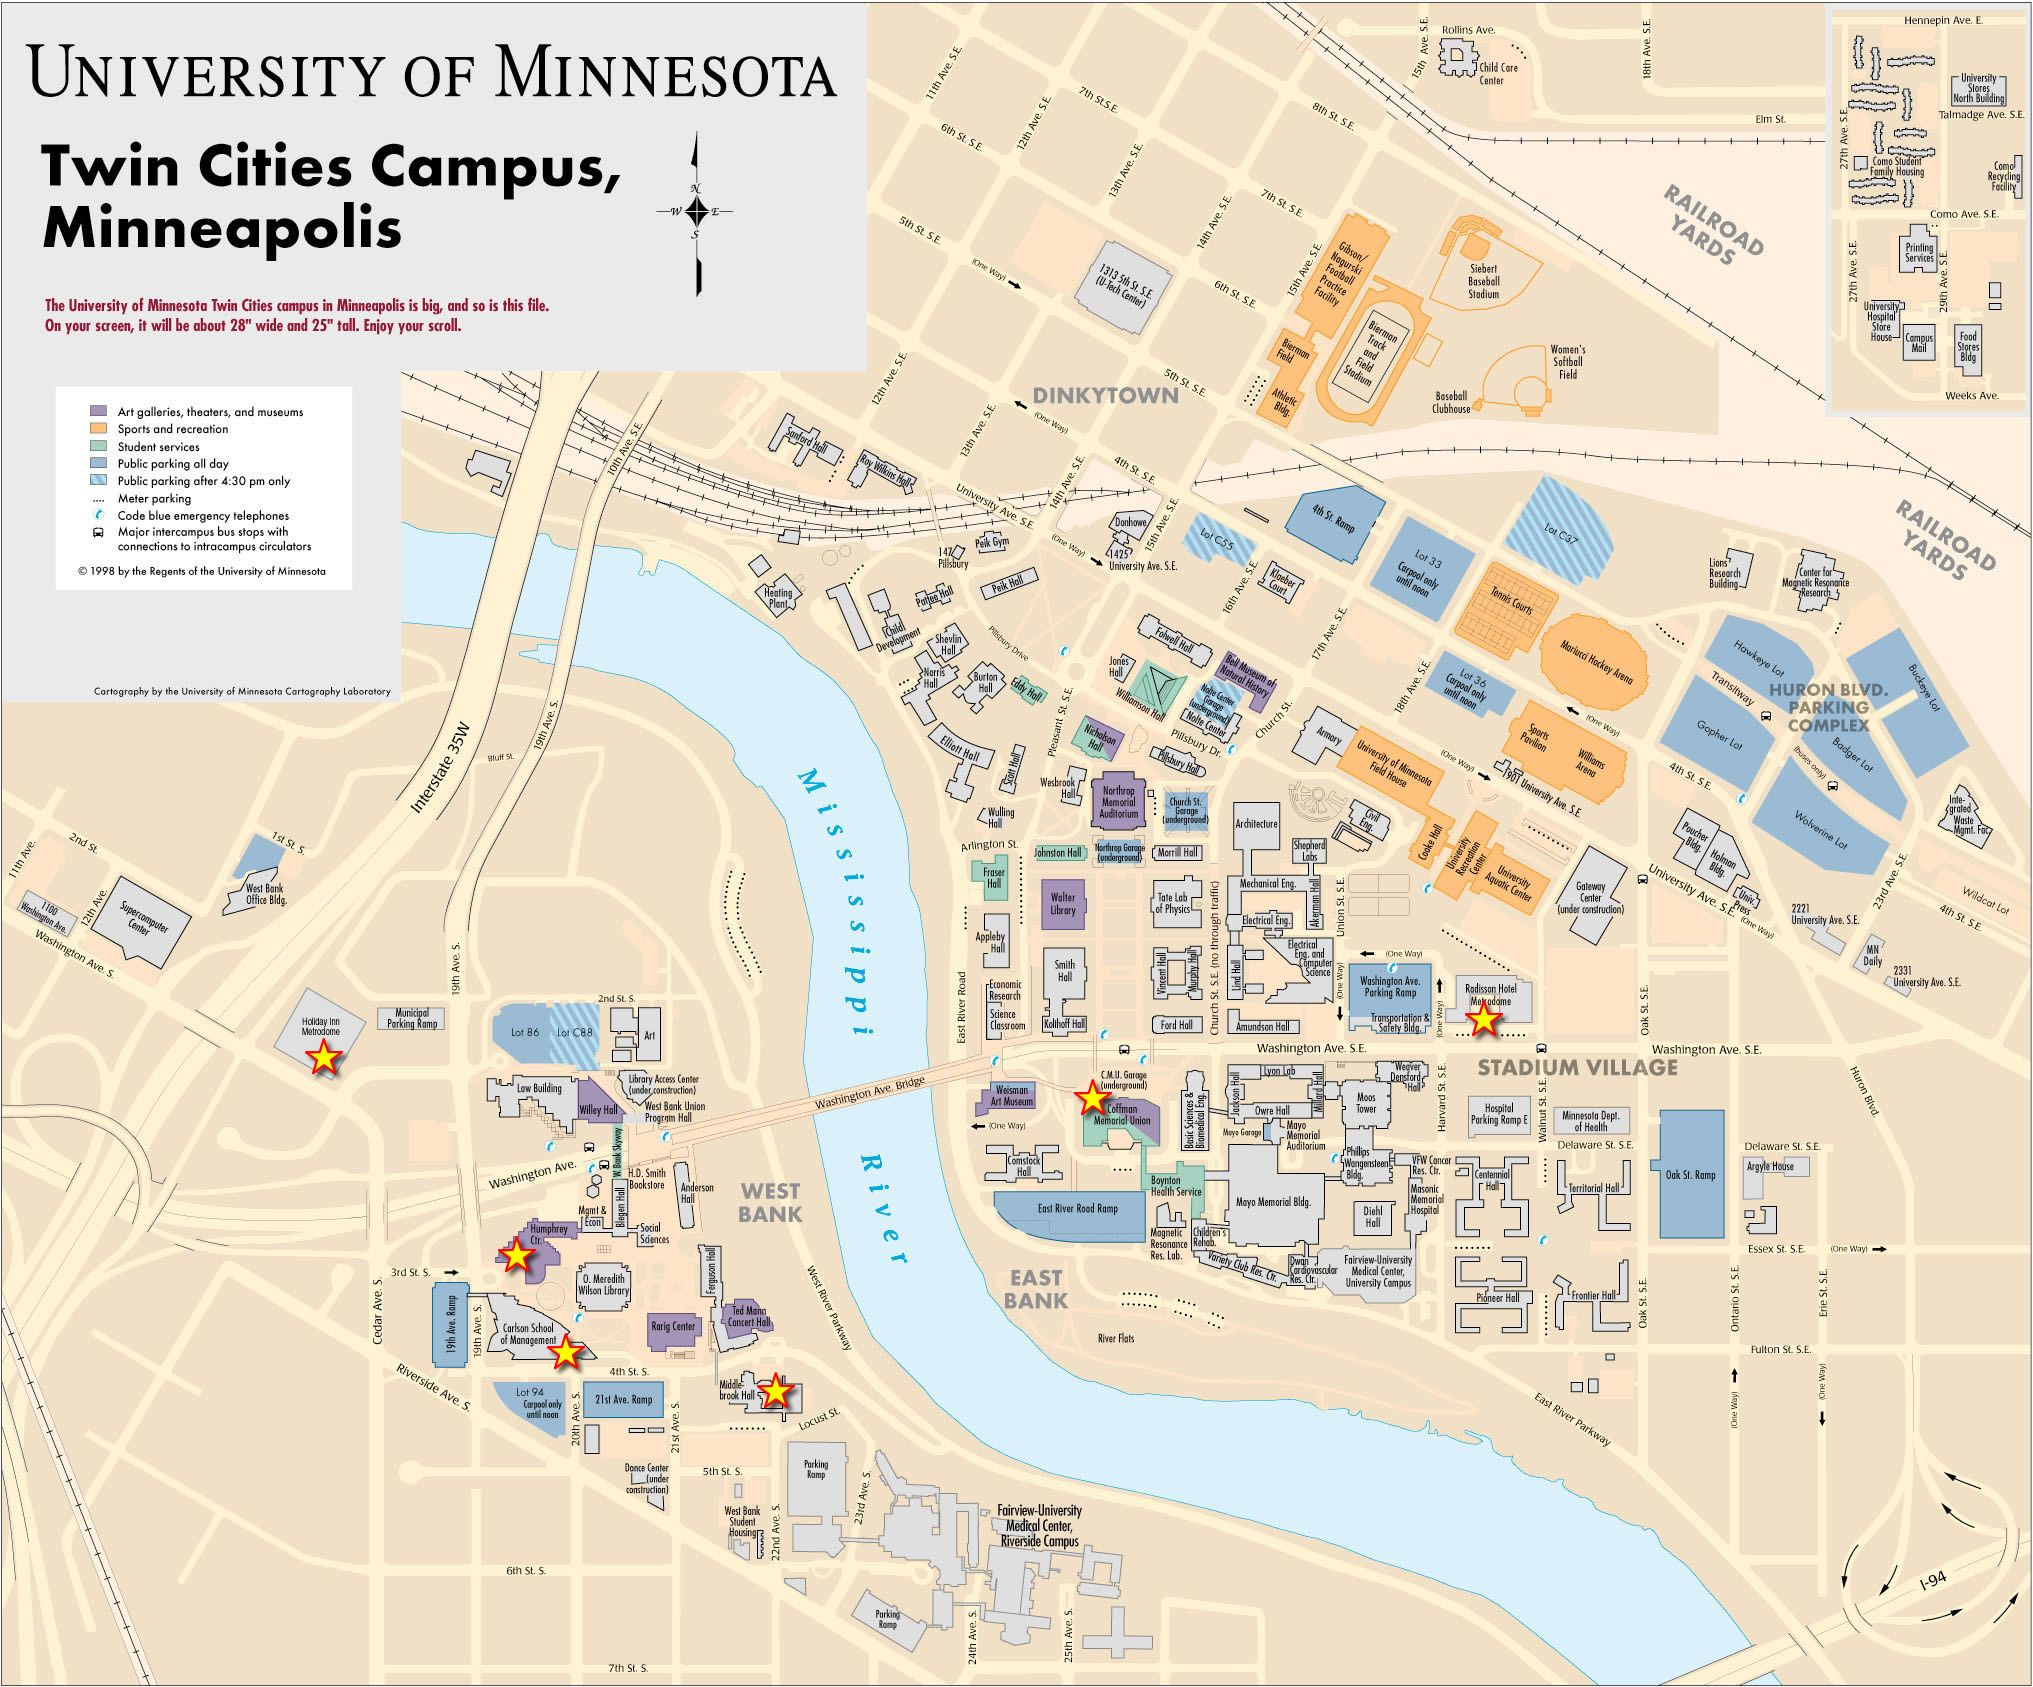 u of mn campus map University Of Minnesota Twin Cities Campus Map University Of u of mn campus map